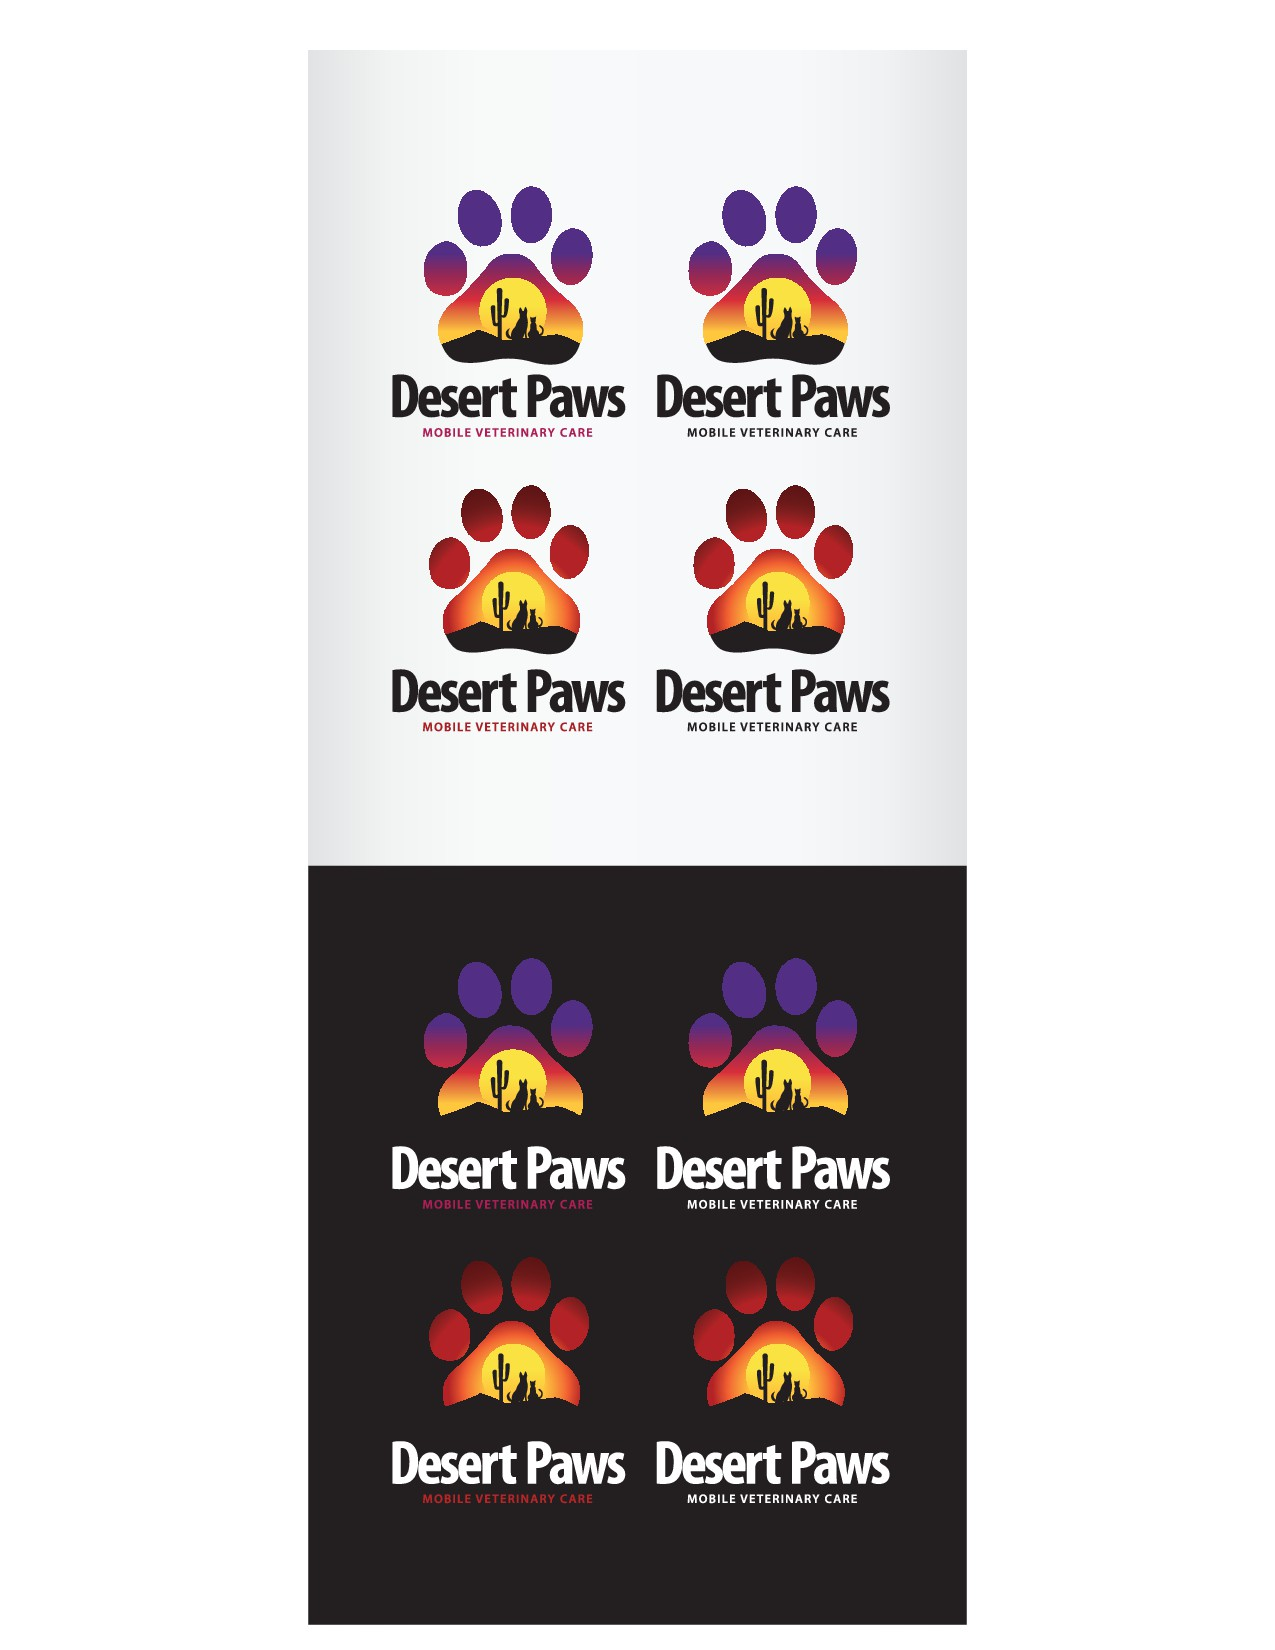 Desert themed logo for small animal mobile vet